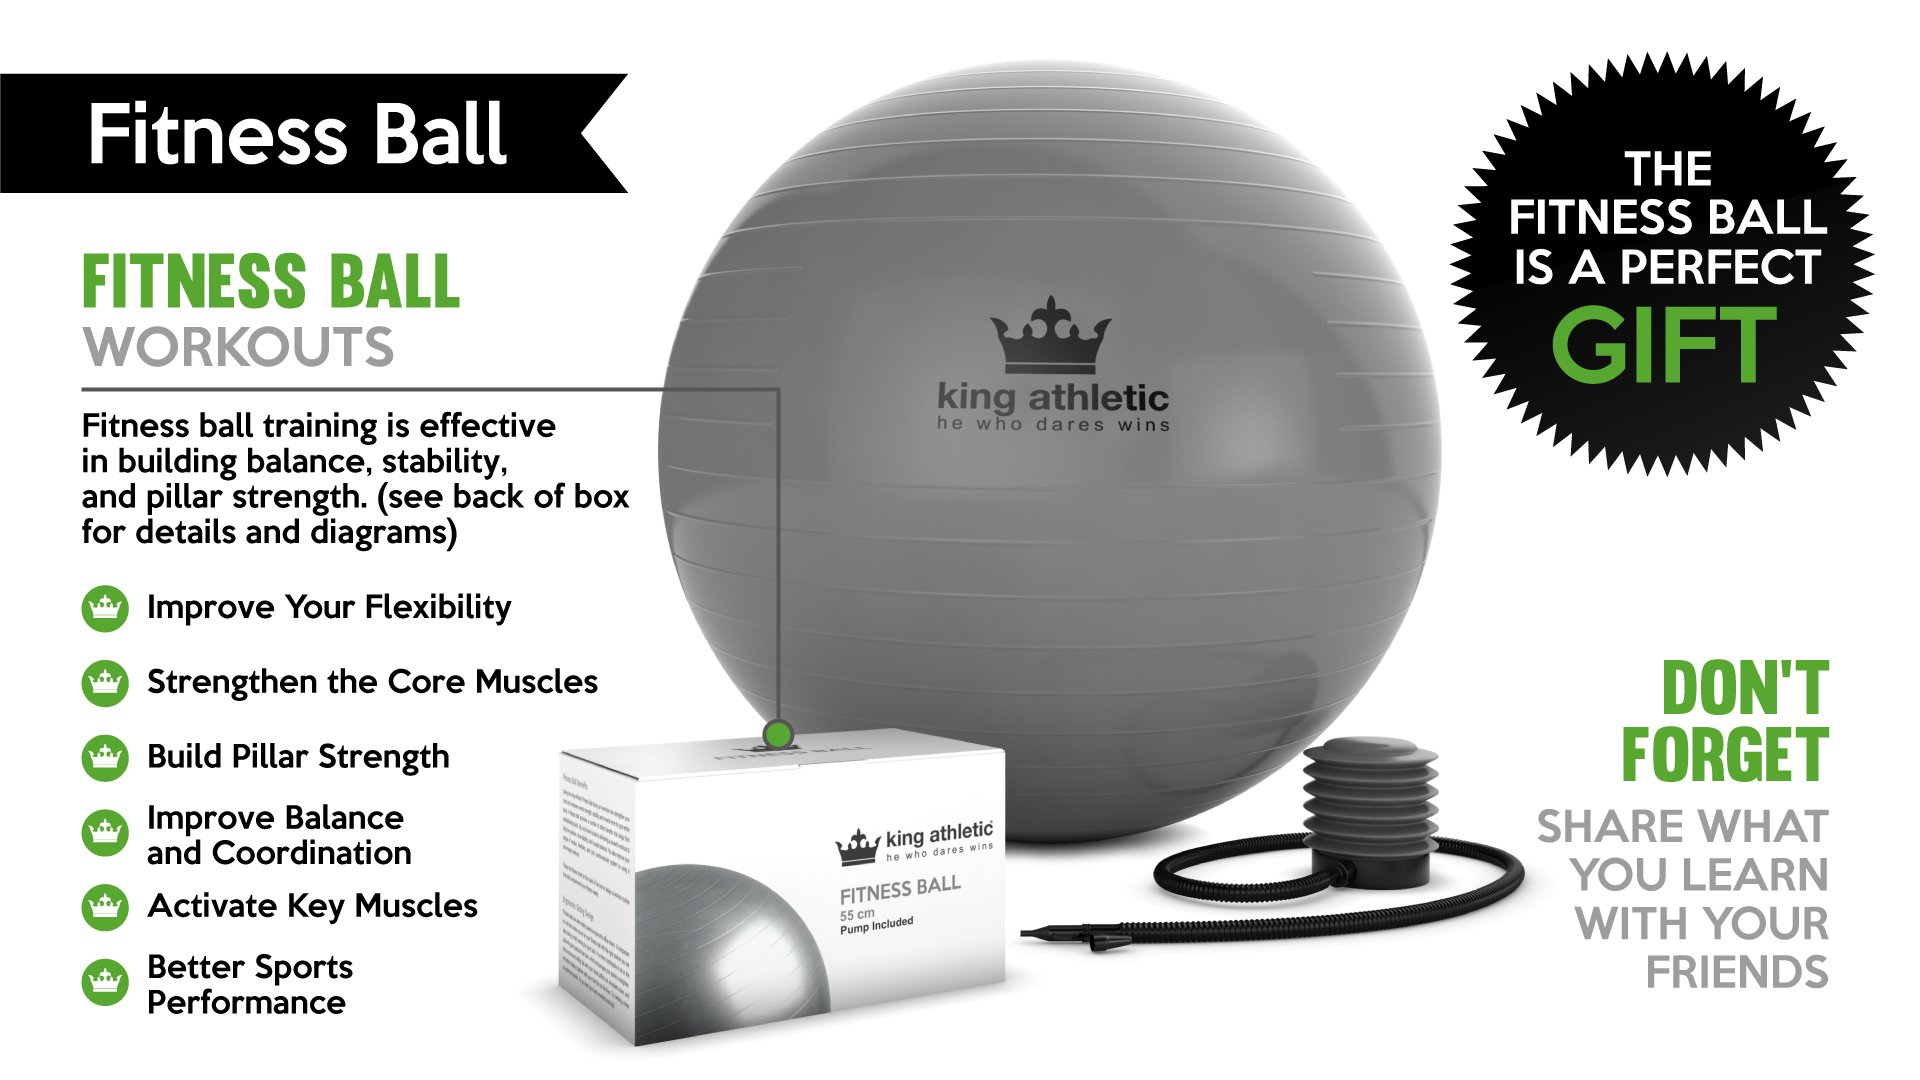 Cyber Week Sale :: Exercise Ball :: Stability Balance Swiss Yoga Balls Made With Anti Burst Rubber :: Fitness Ball Chair Comes in 65 cm & 55cm Size :: Includes Bonus E-Book